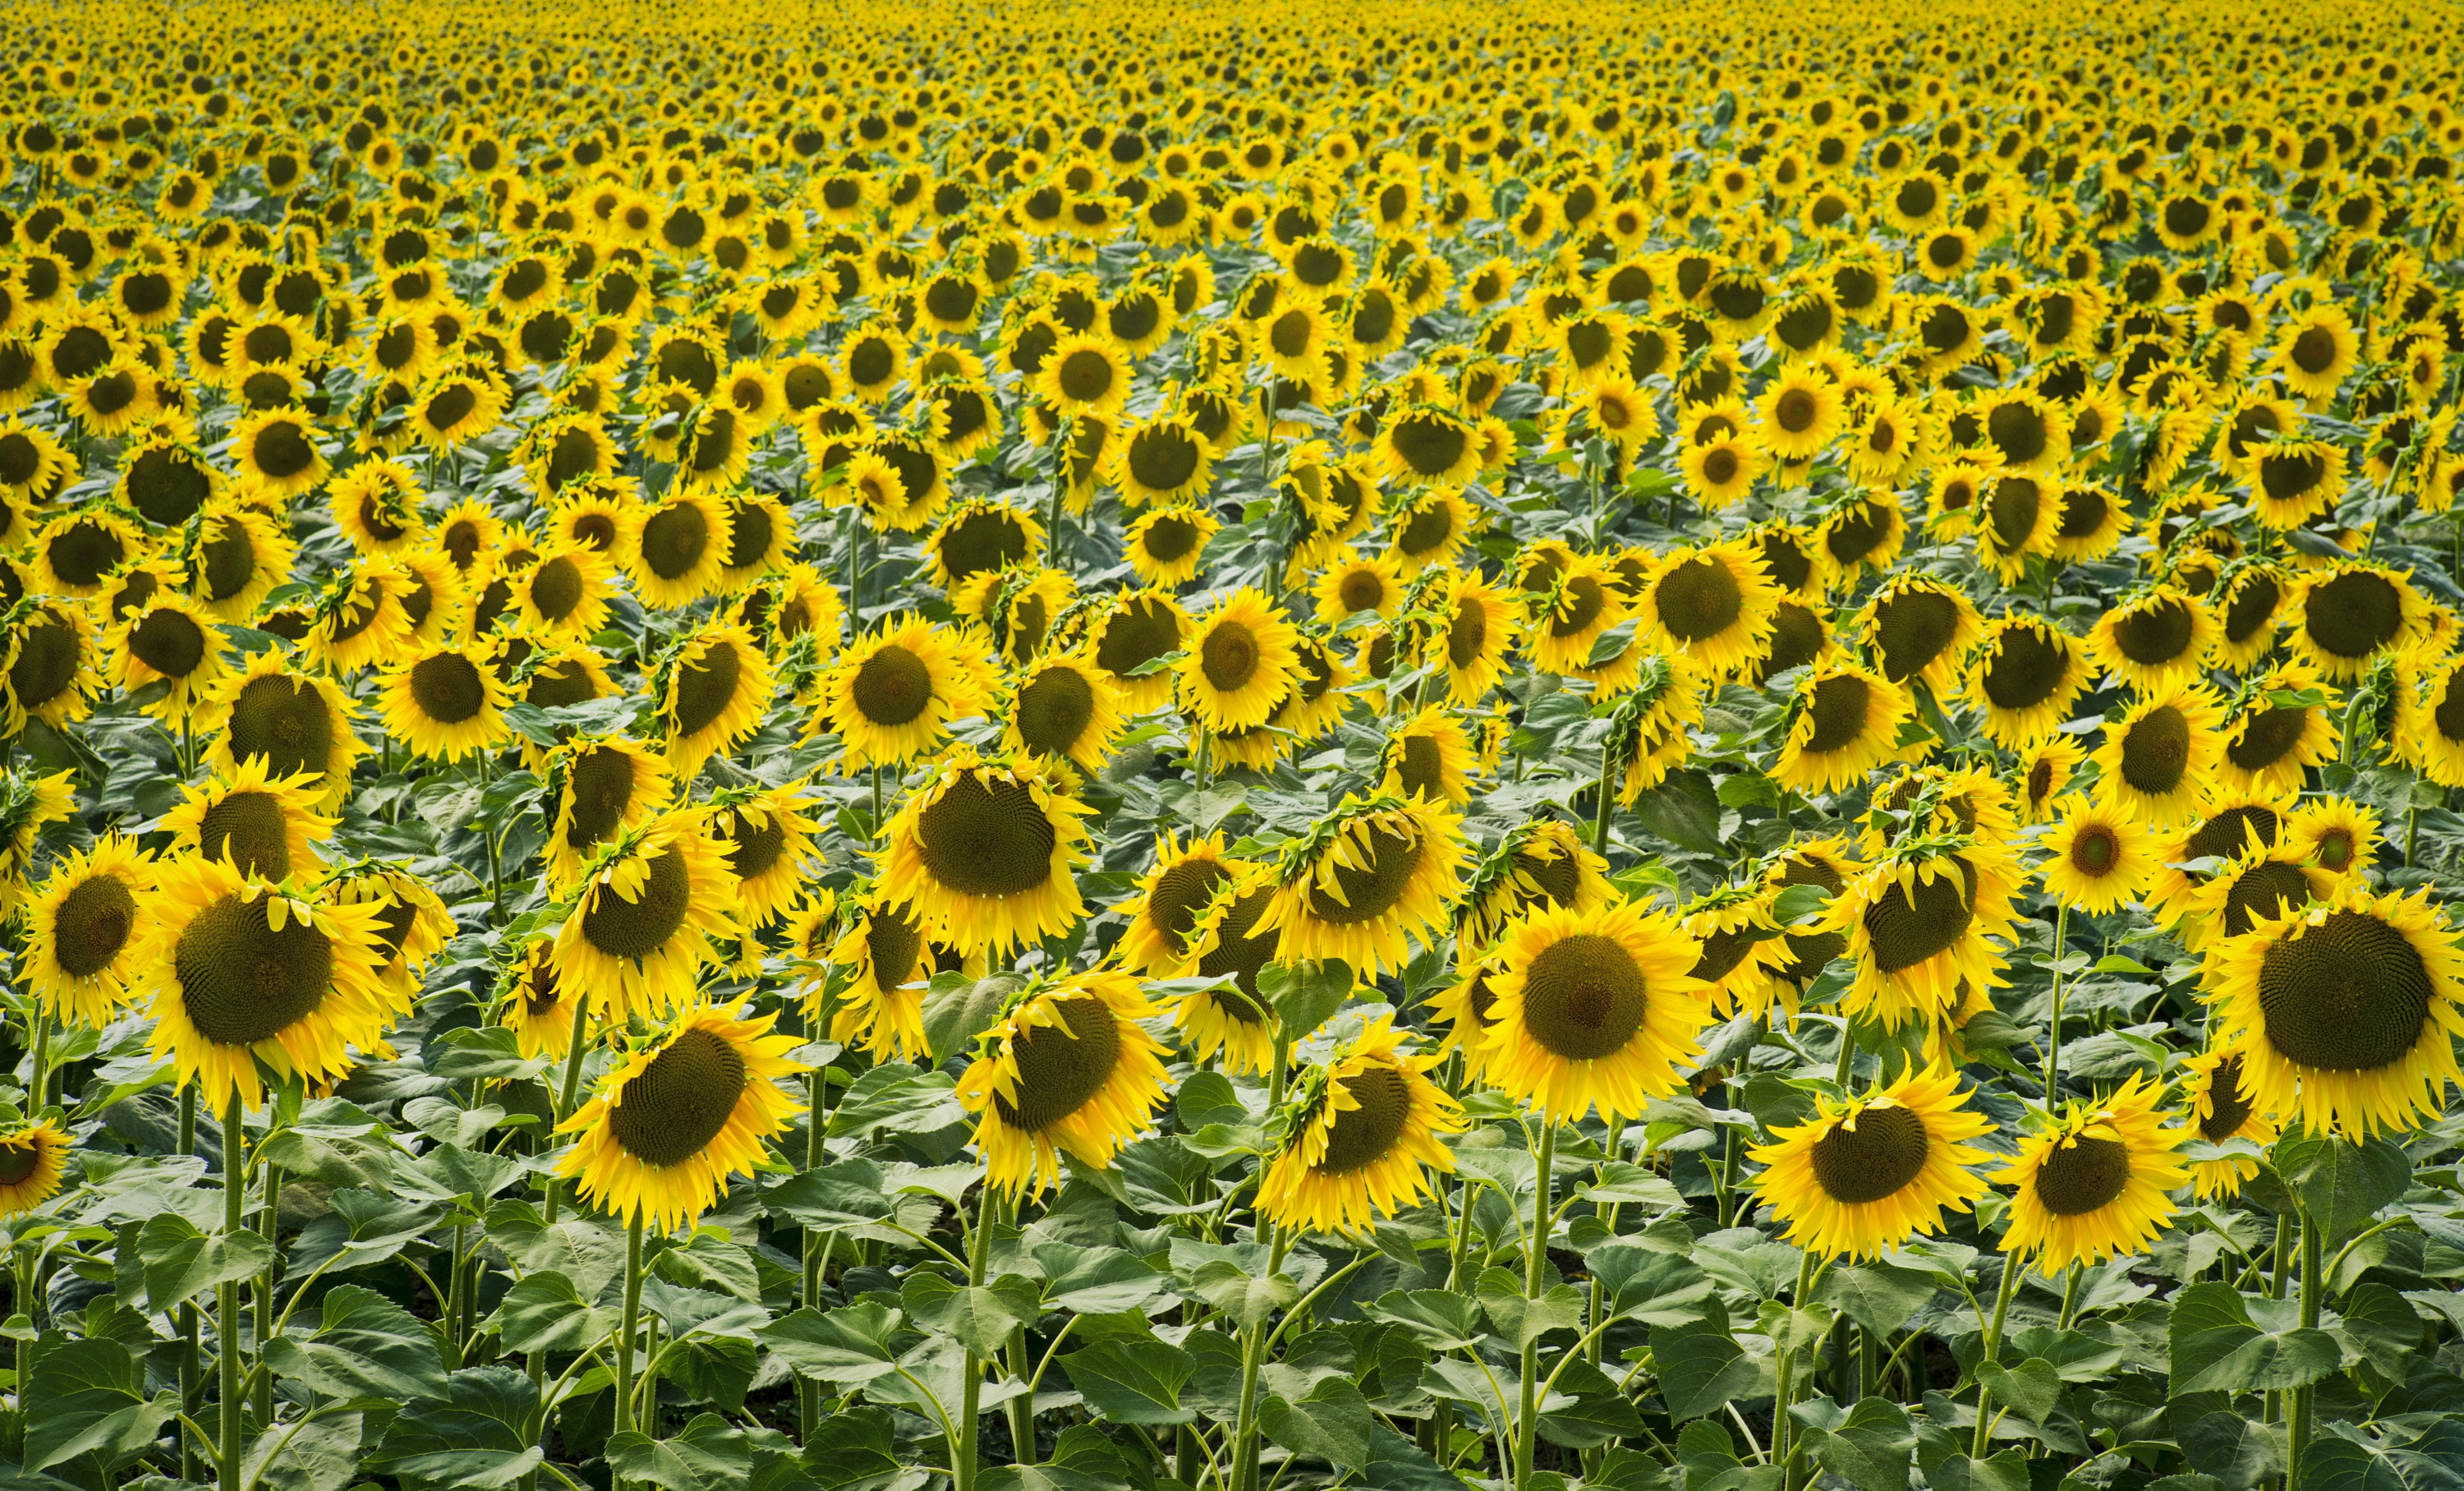 sunflower field during daytime